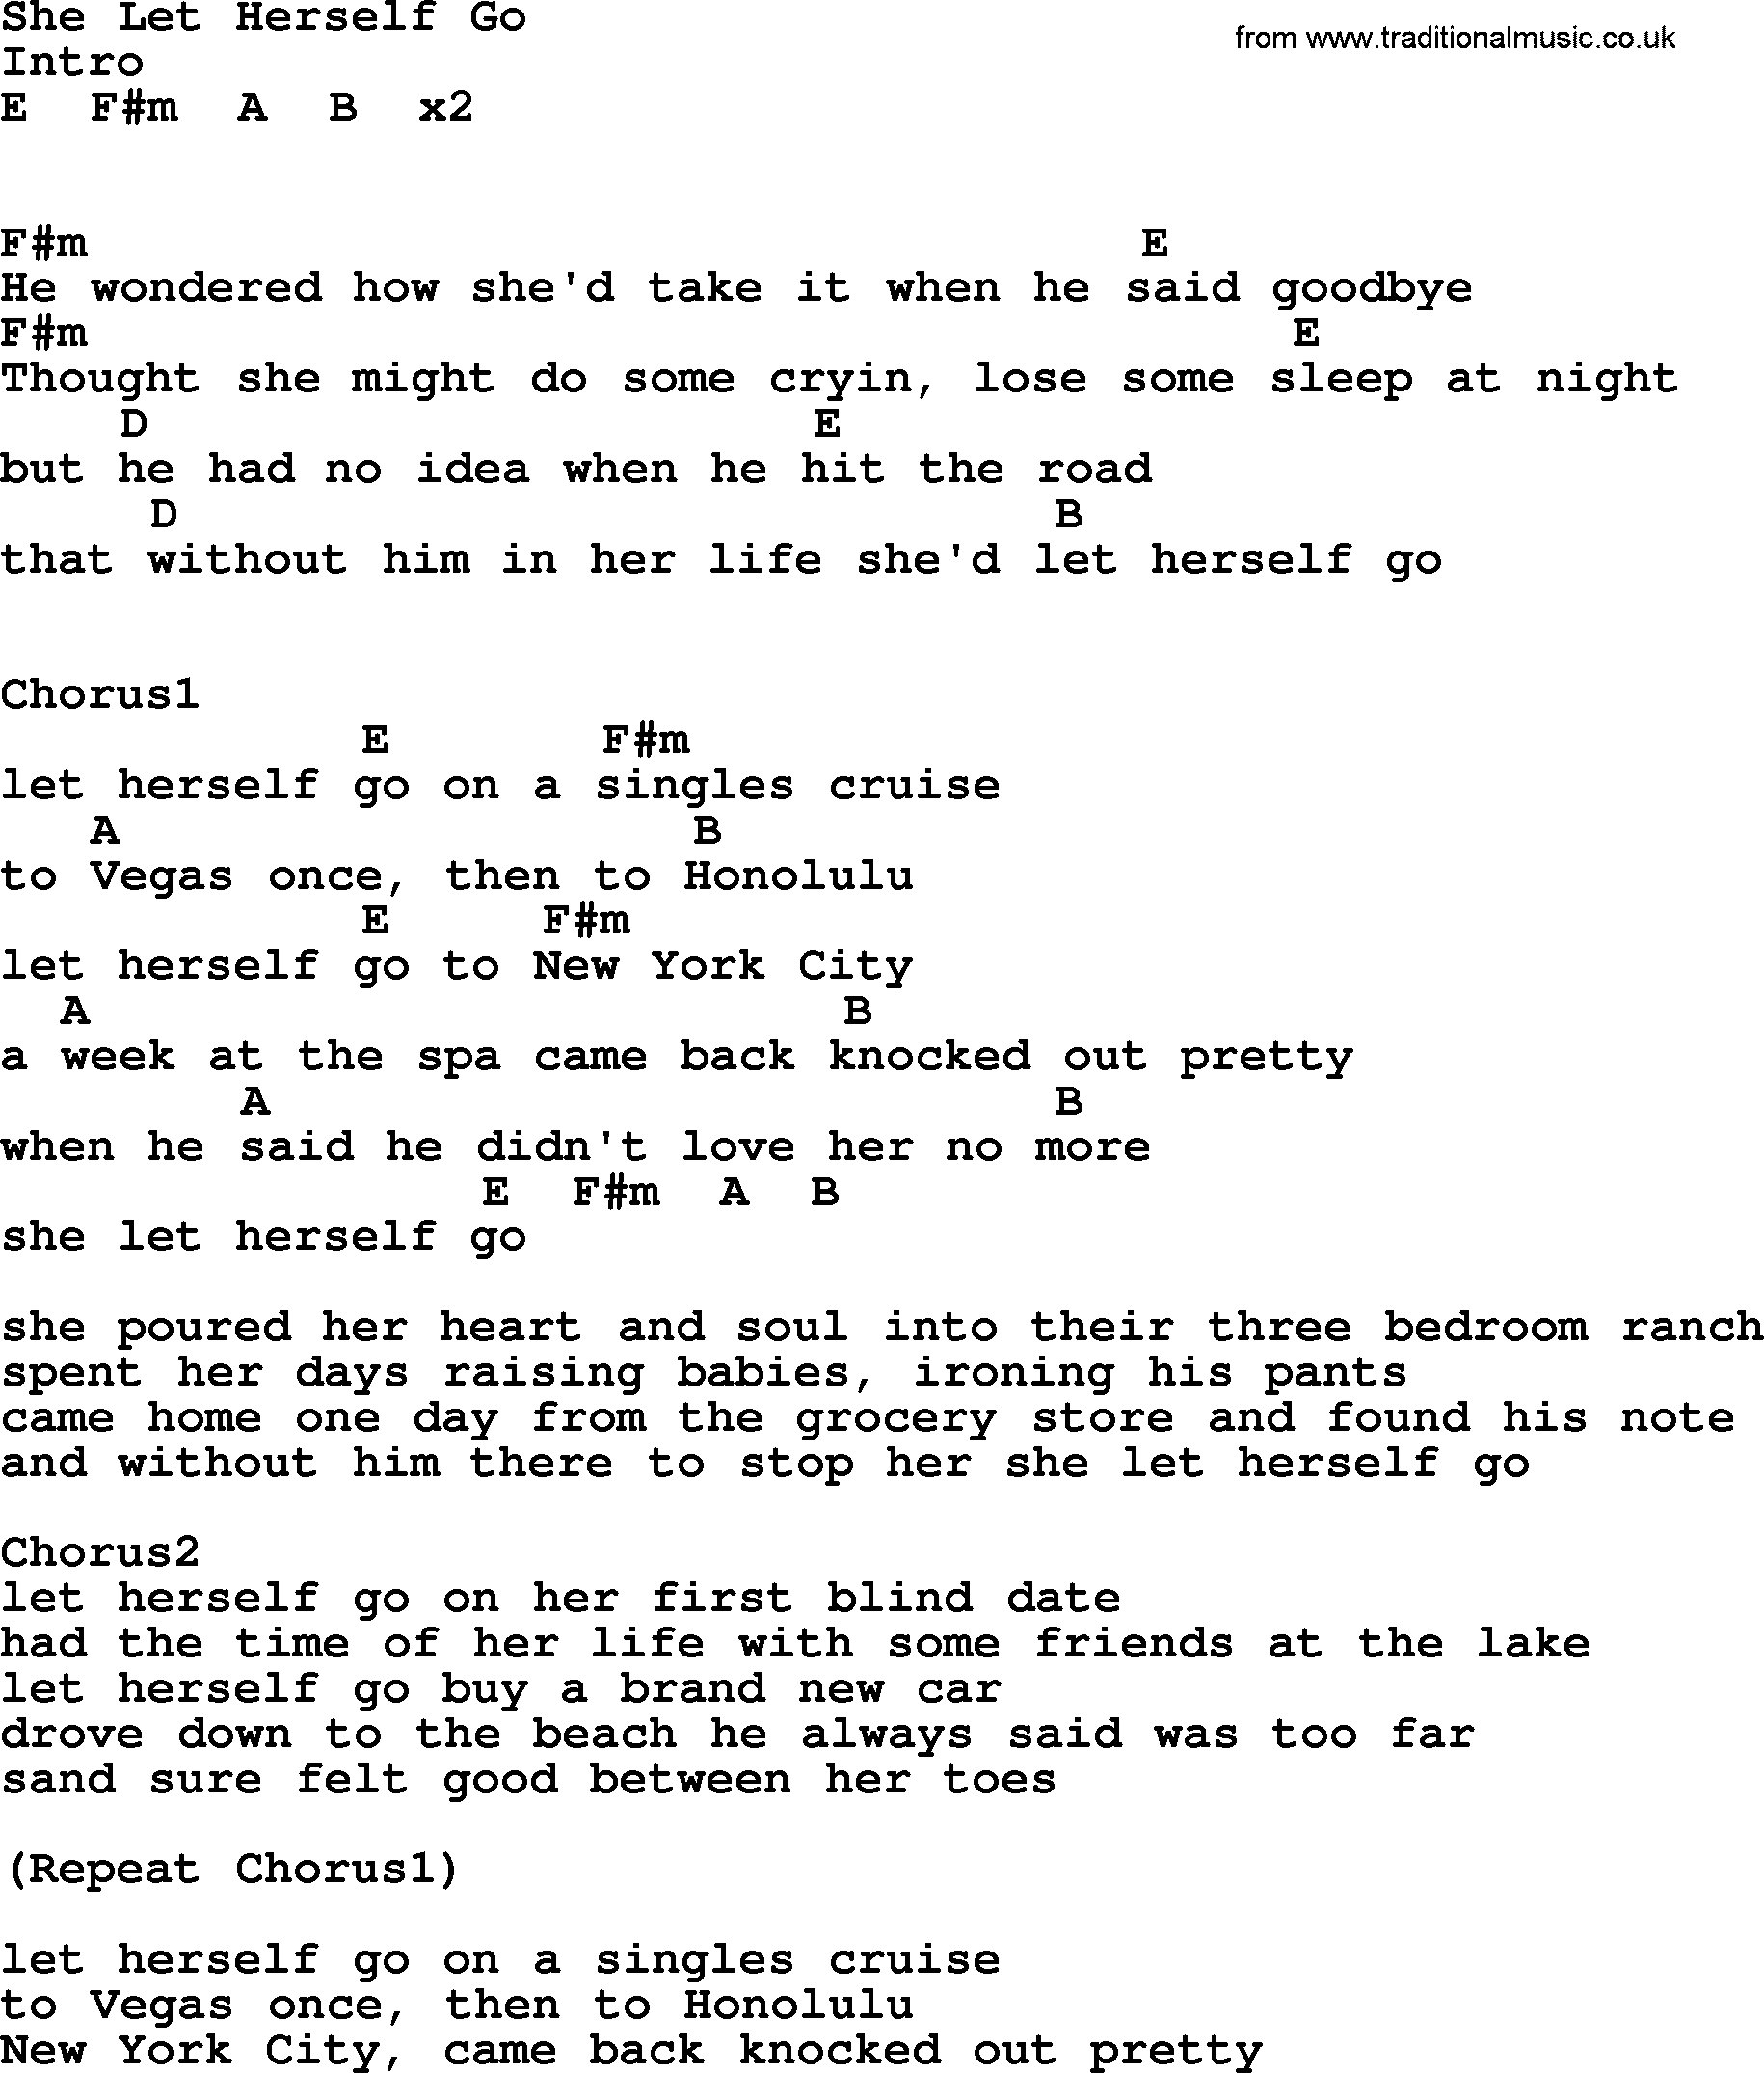 She Let Herself Go By George Strait Lyrics And Chords